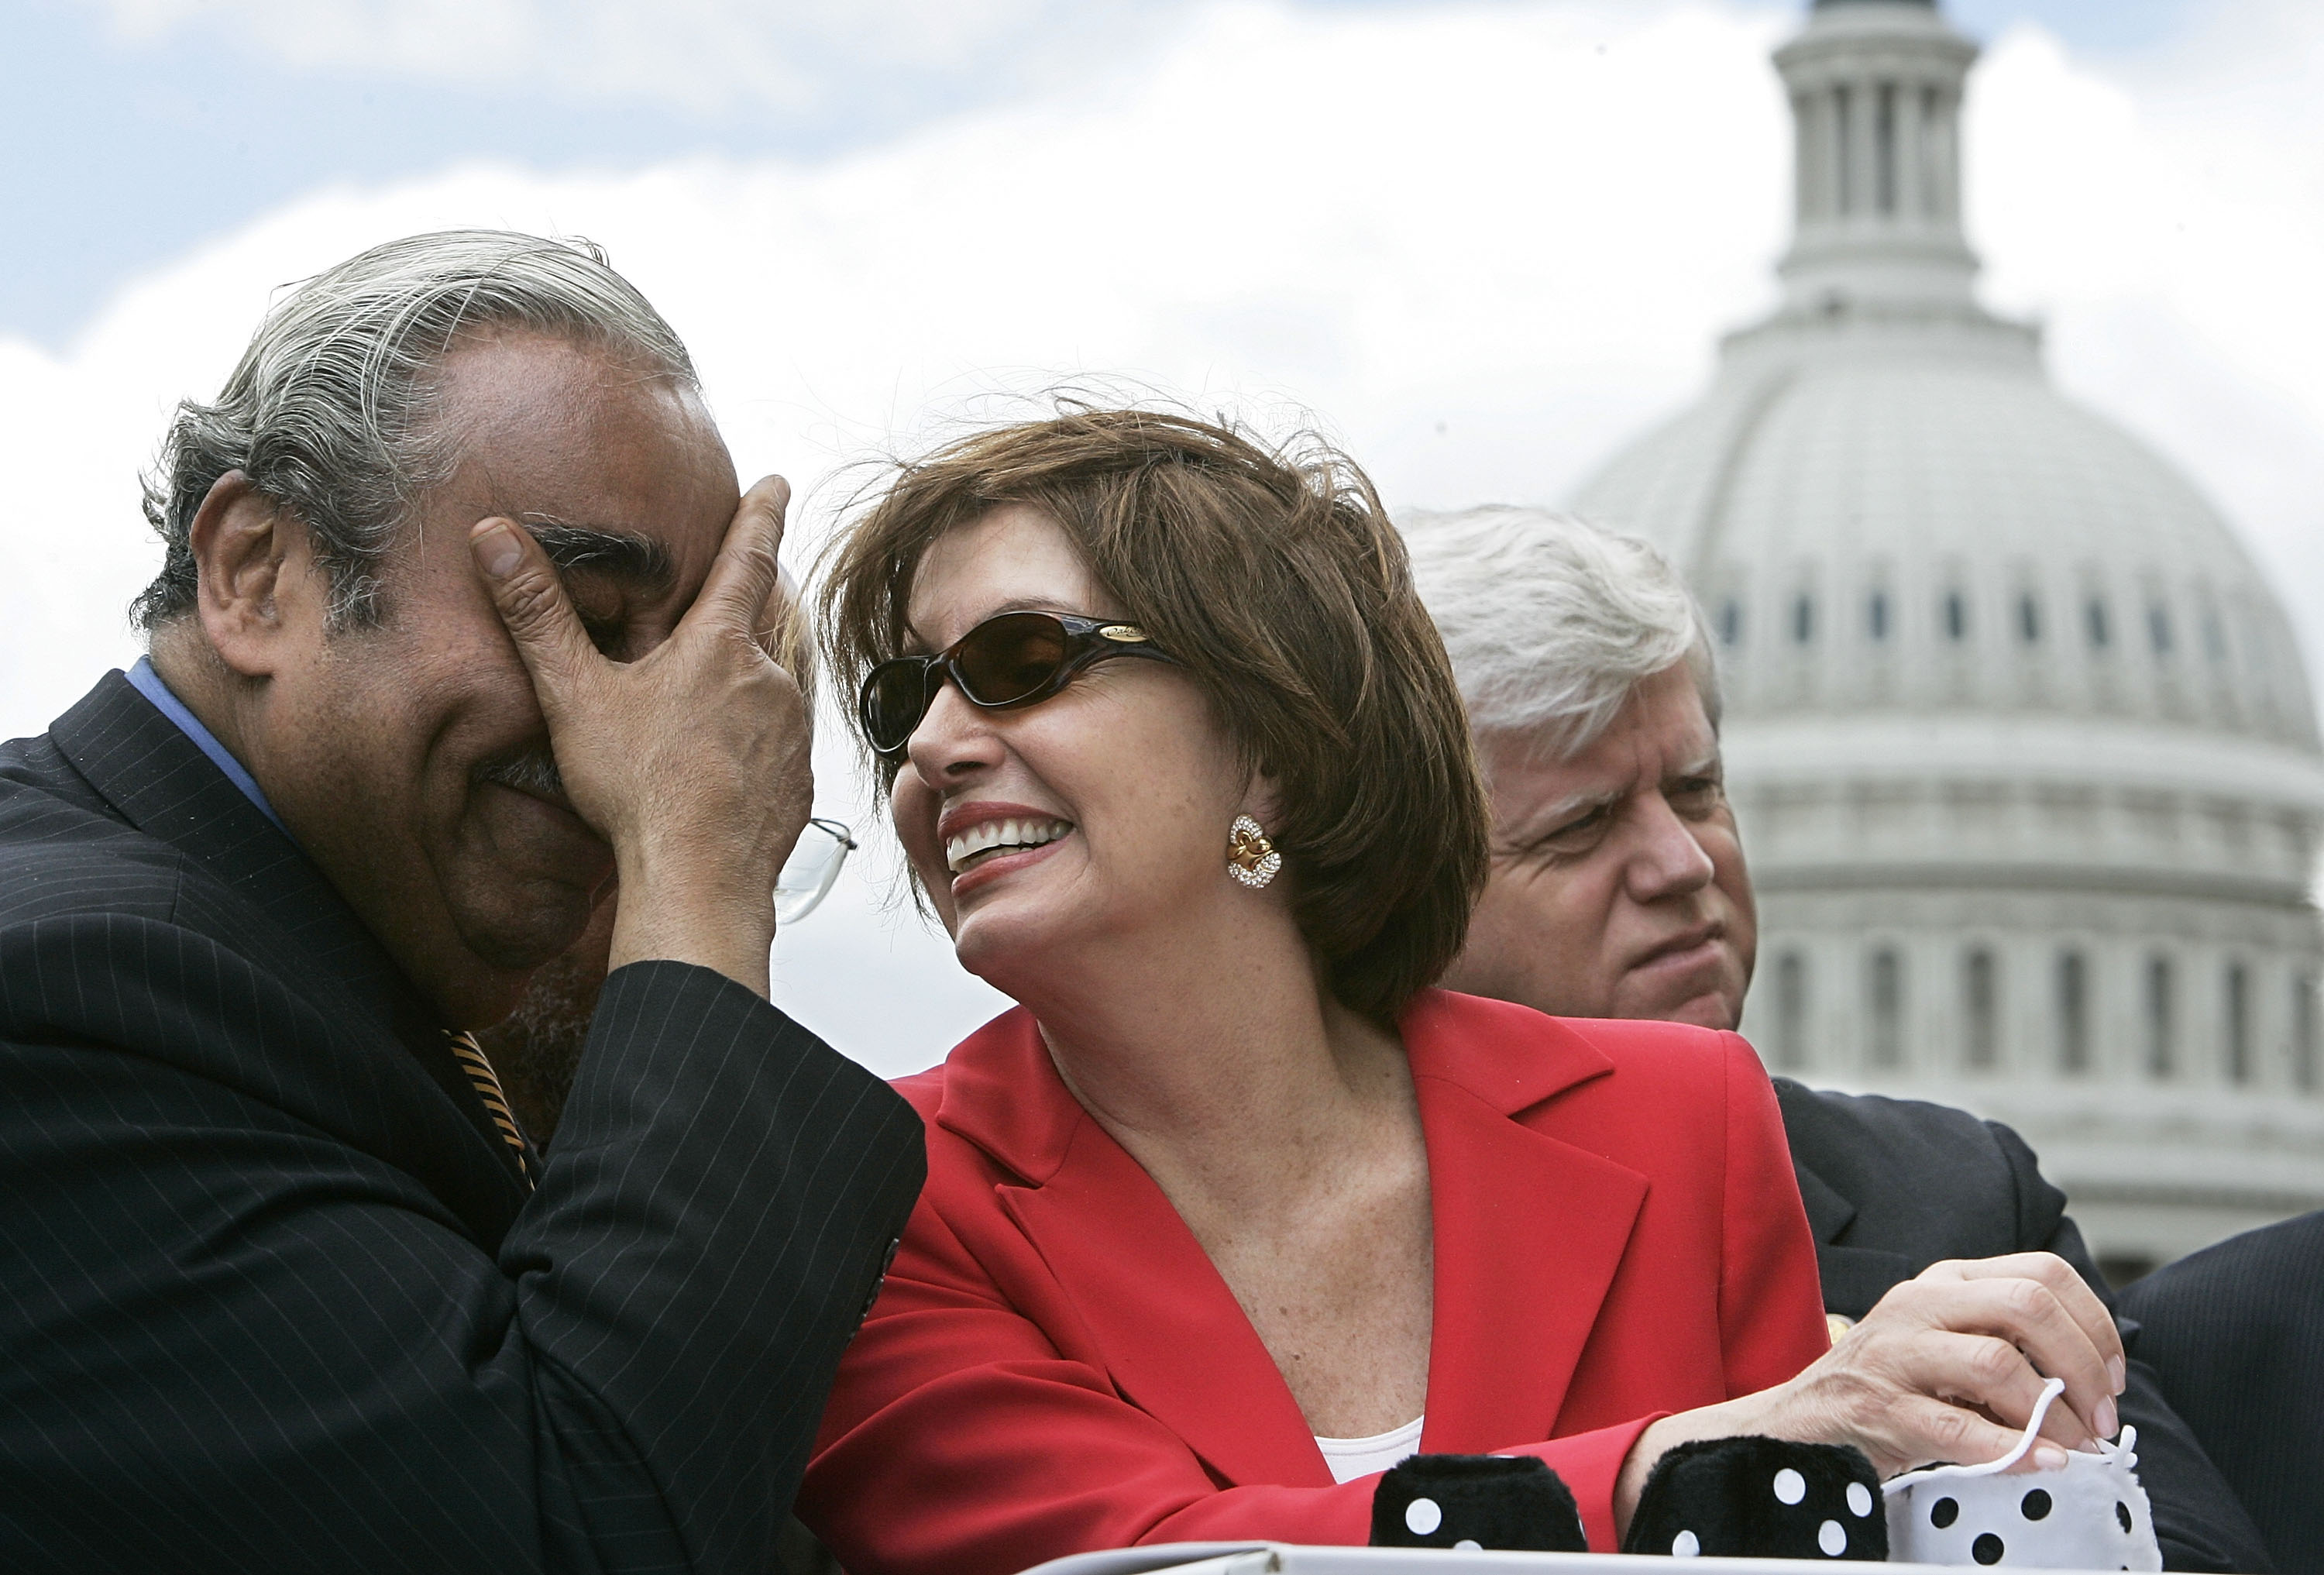 U.S. House Minority Leader Rep. Nancy Pelosi (D-CA) shares a moment with Rep. Charles Rangel (D-NY) as Rep. John Larson (D-CT) listens during a news conference on the reform of the Social Security system on Capitol Hill in Washington,  May 26, 2005.